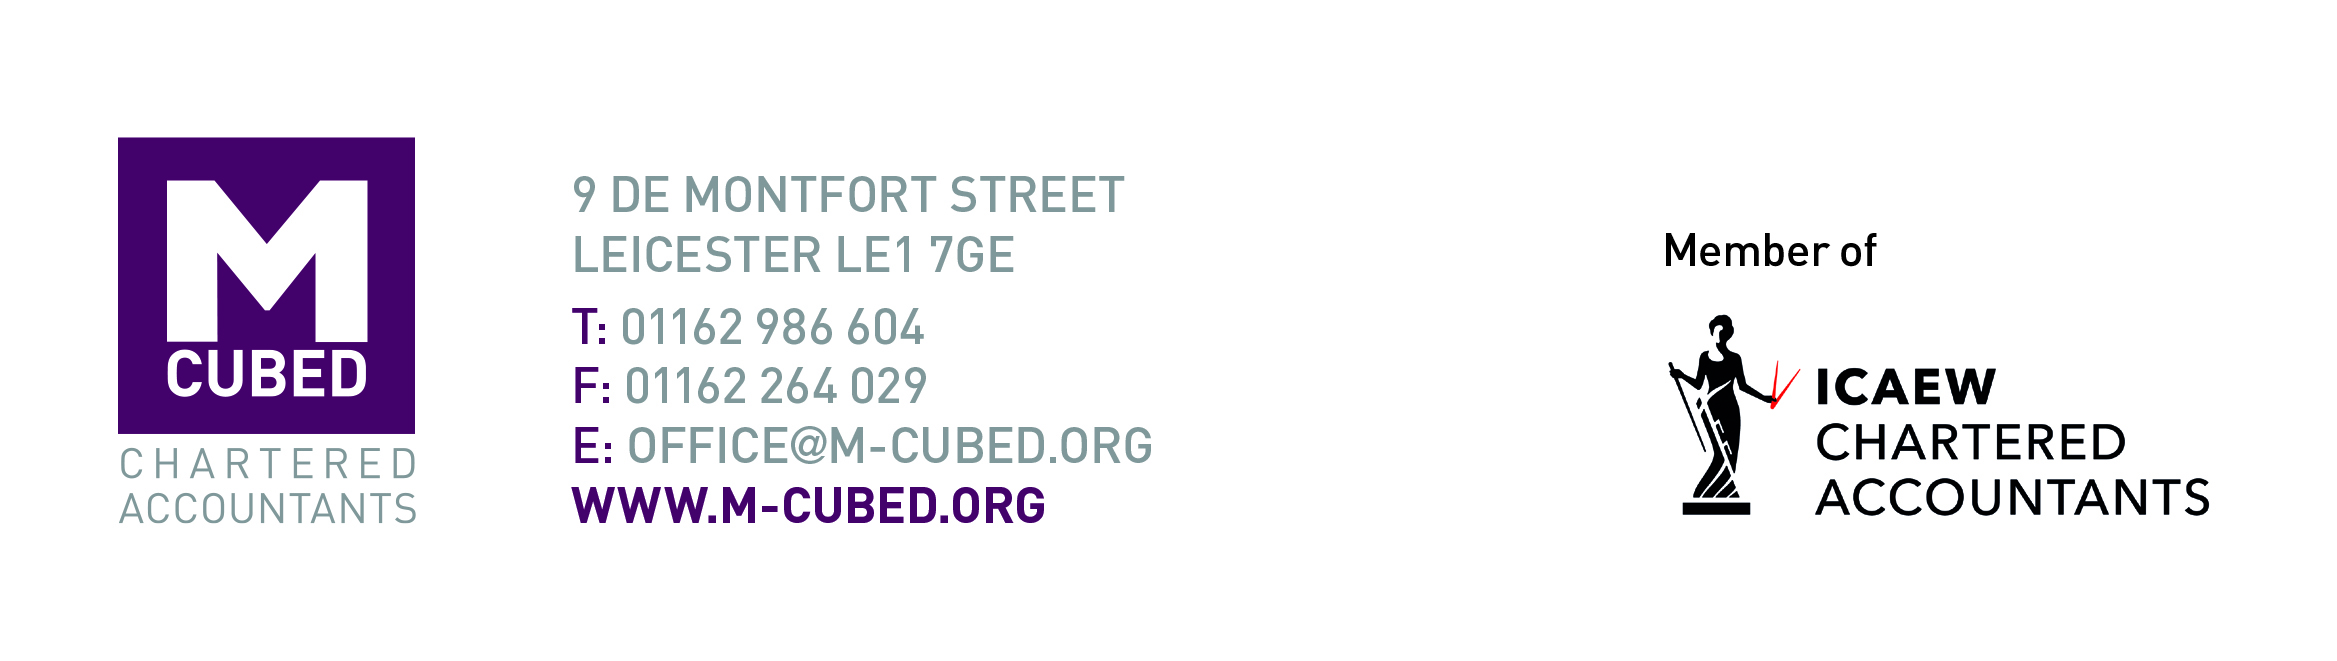 M Cubed tax specialists chartered accountants details